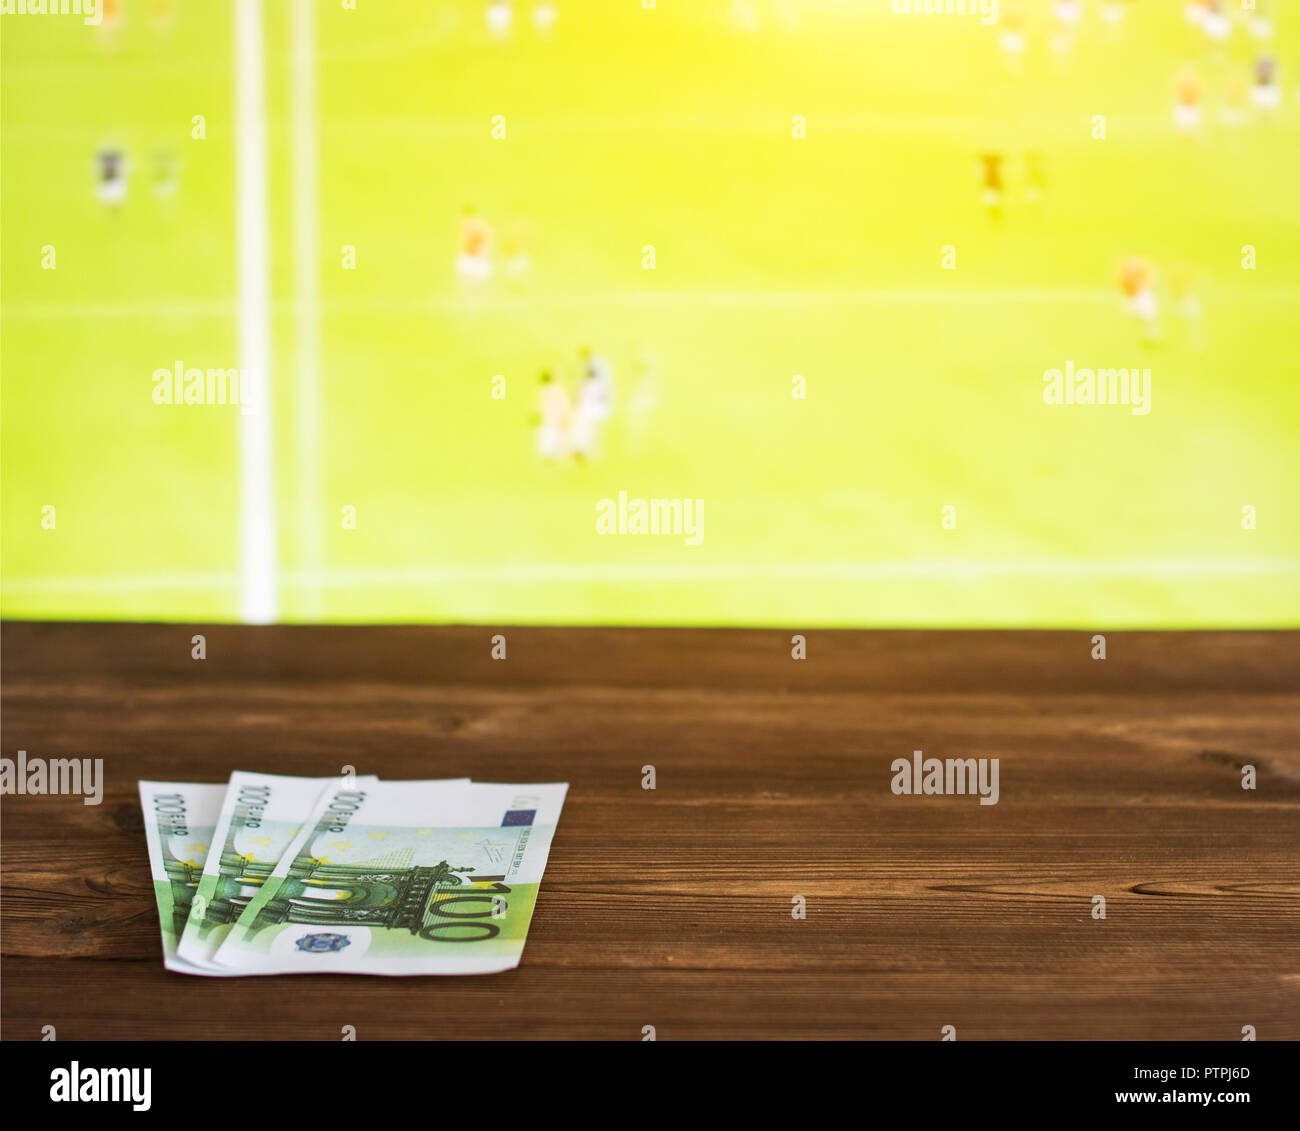 Euro money on the background of the TV on which show Gaelic football, sports betting, Gaelic Football Stock Photo